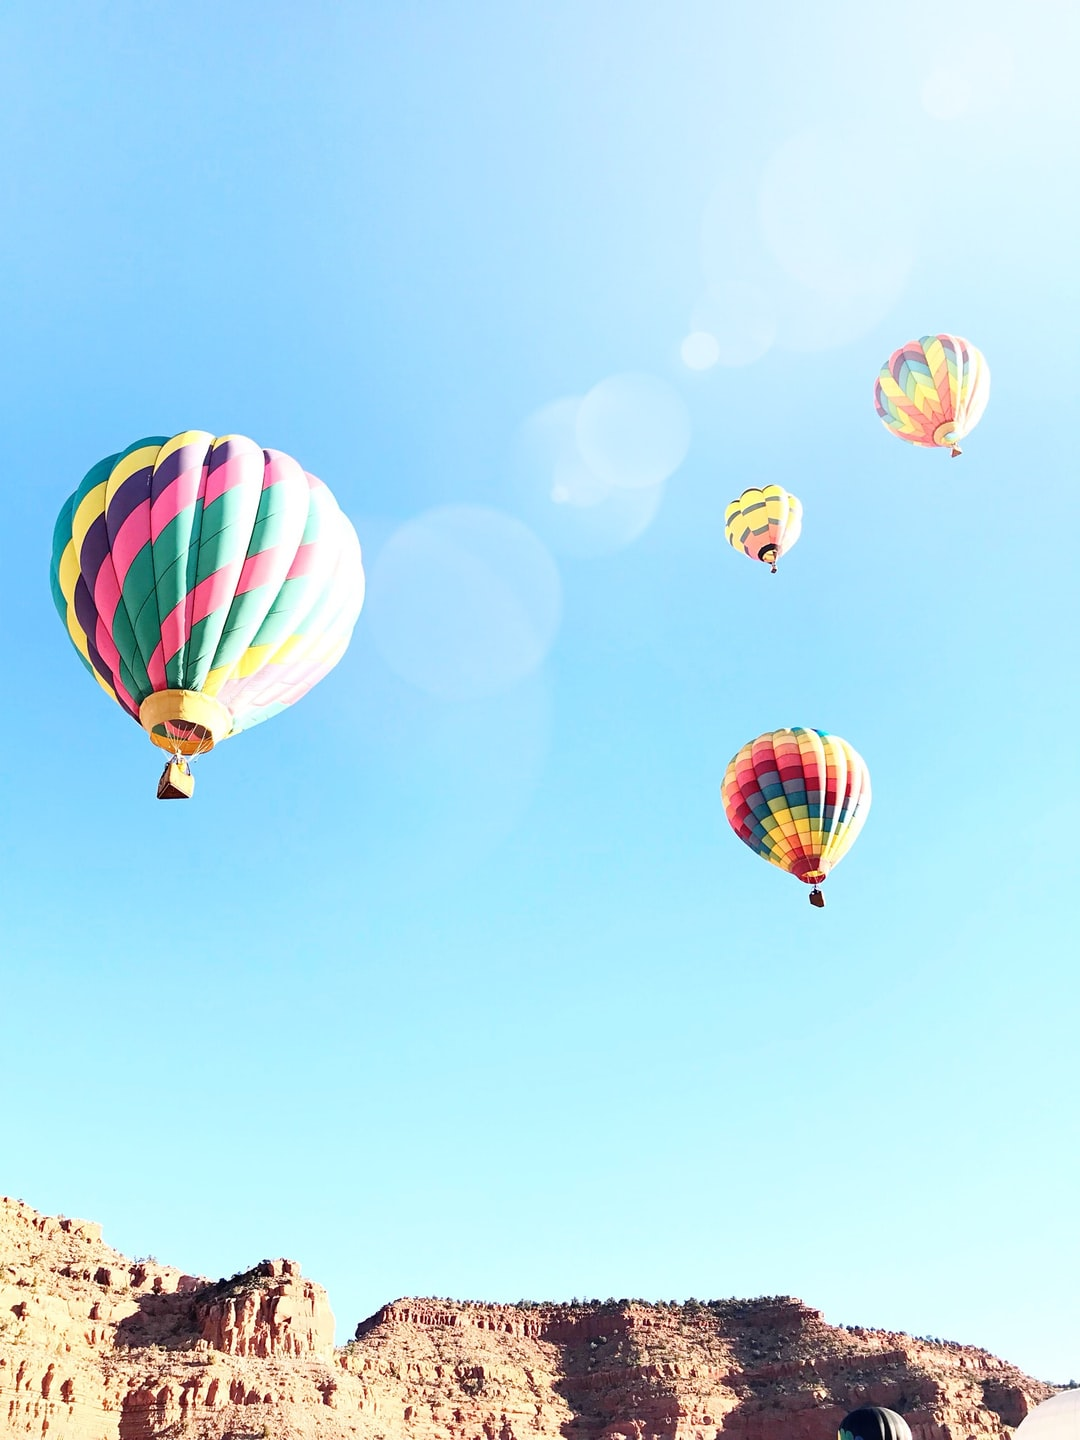 Taken at the Balloons and Tunes festival in Kanab, UT 2/17/18